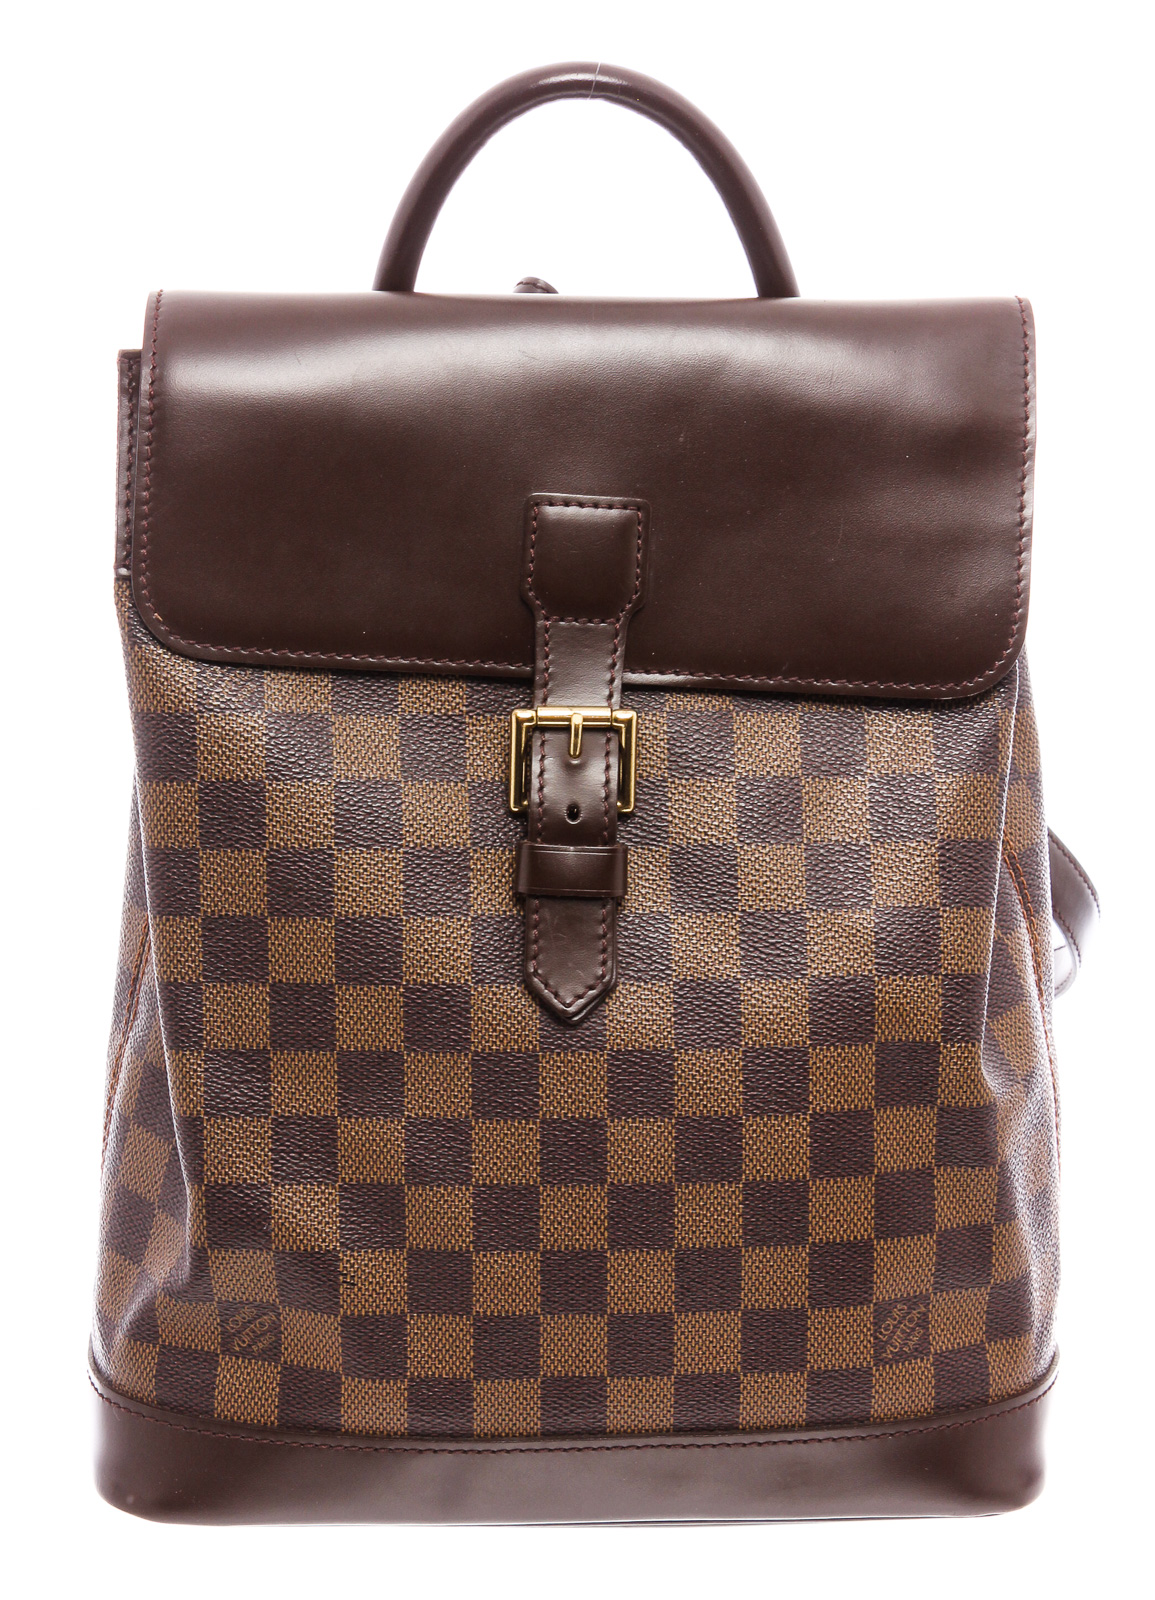 Louis Vuitton Damier Soho Backpack Marque Luxury.jpg